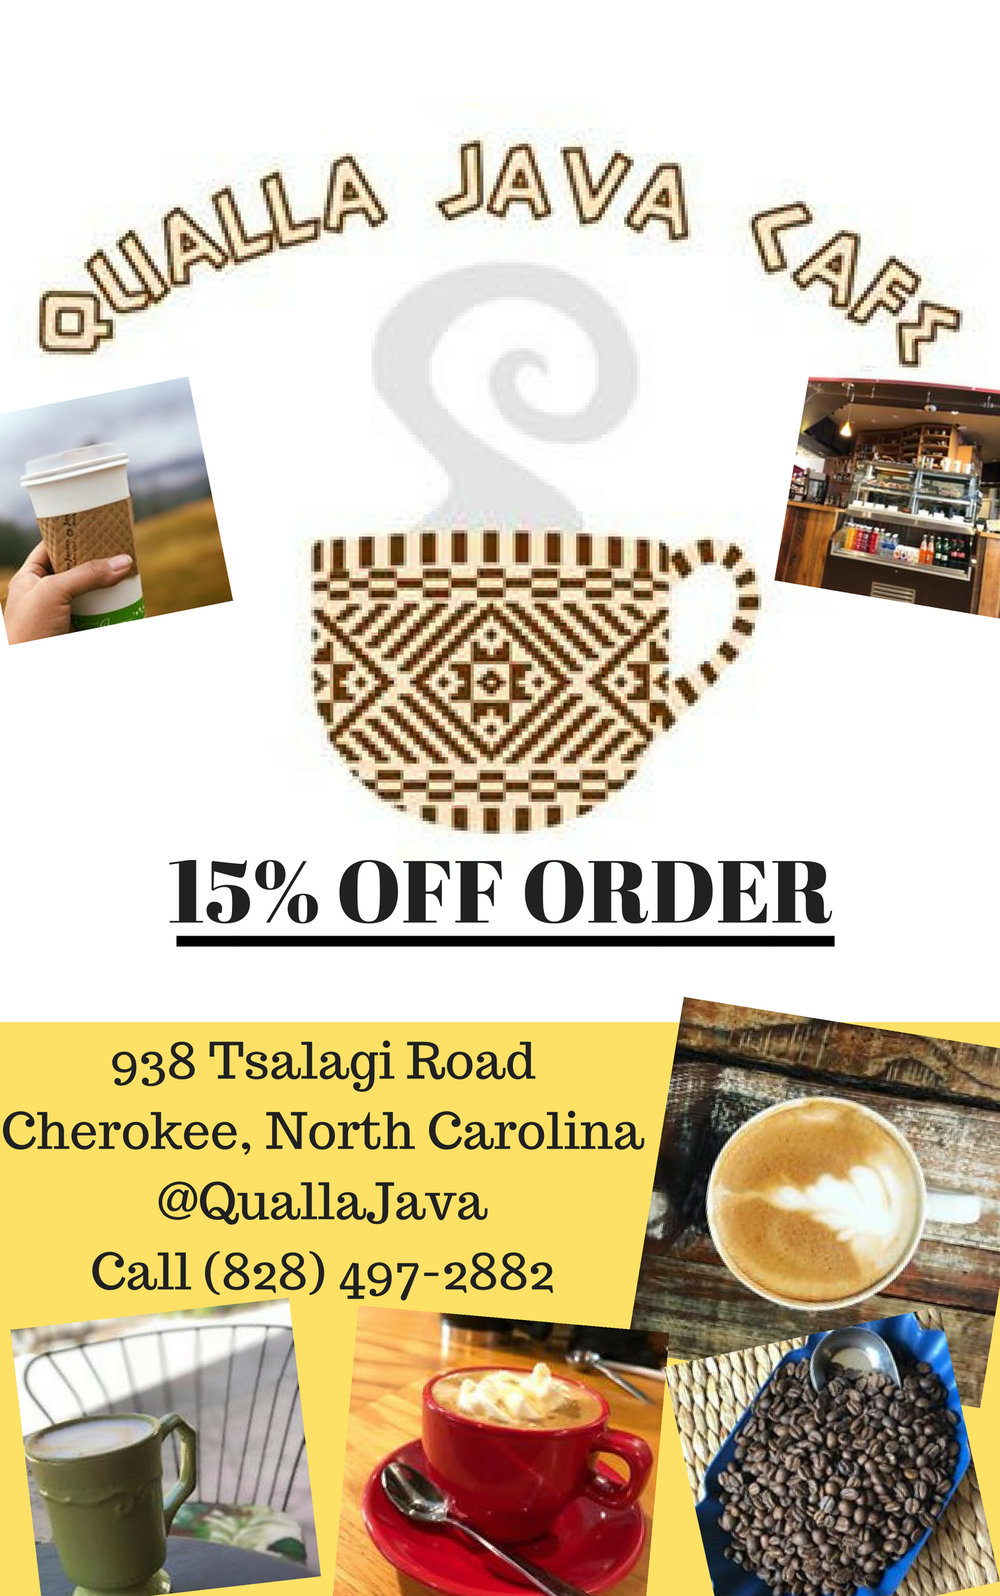 Qualla Java Café  15% OFF Order